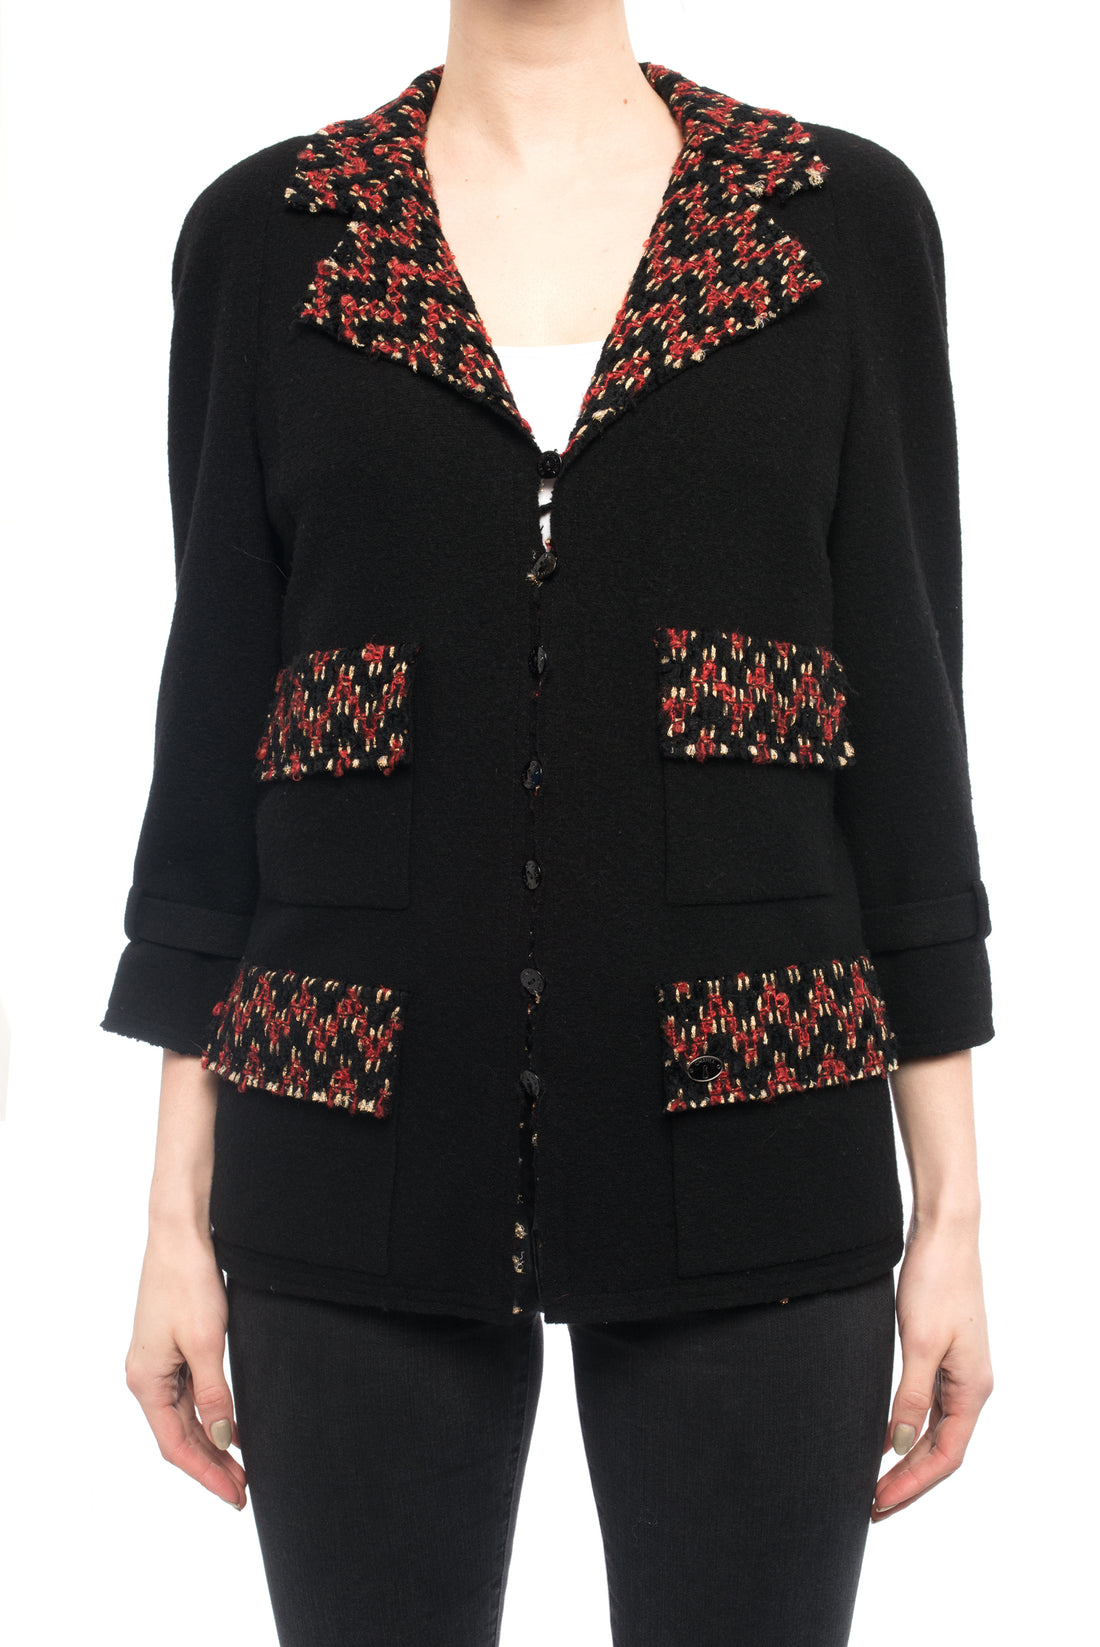 Chanel 07A Runway Black and Red Knit Jersey Jacket - 6